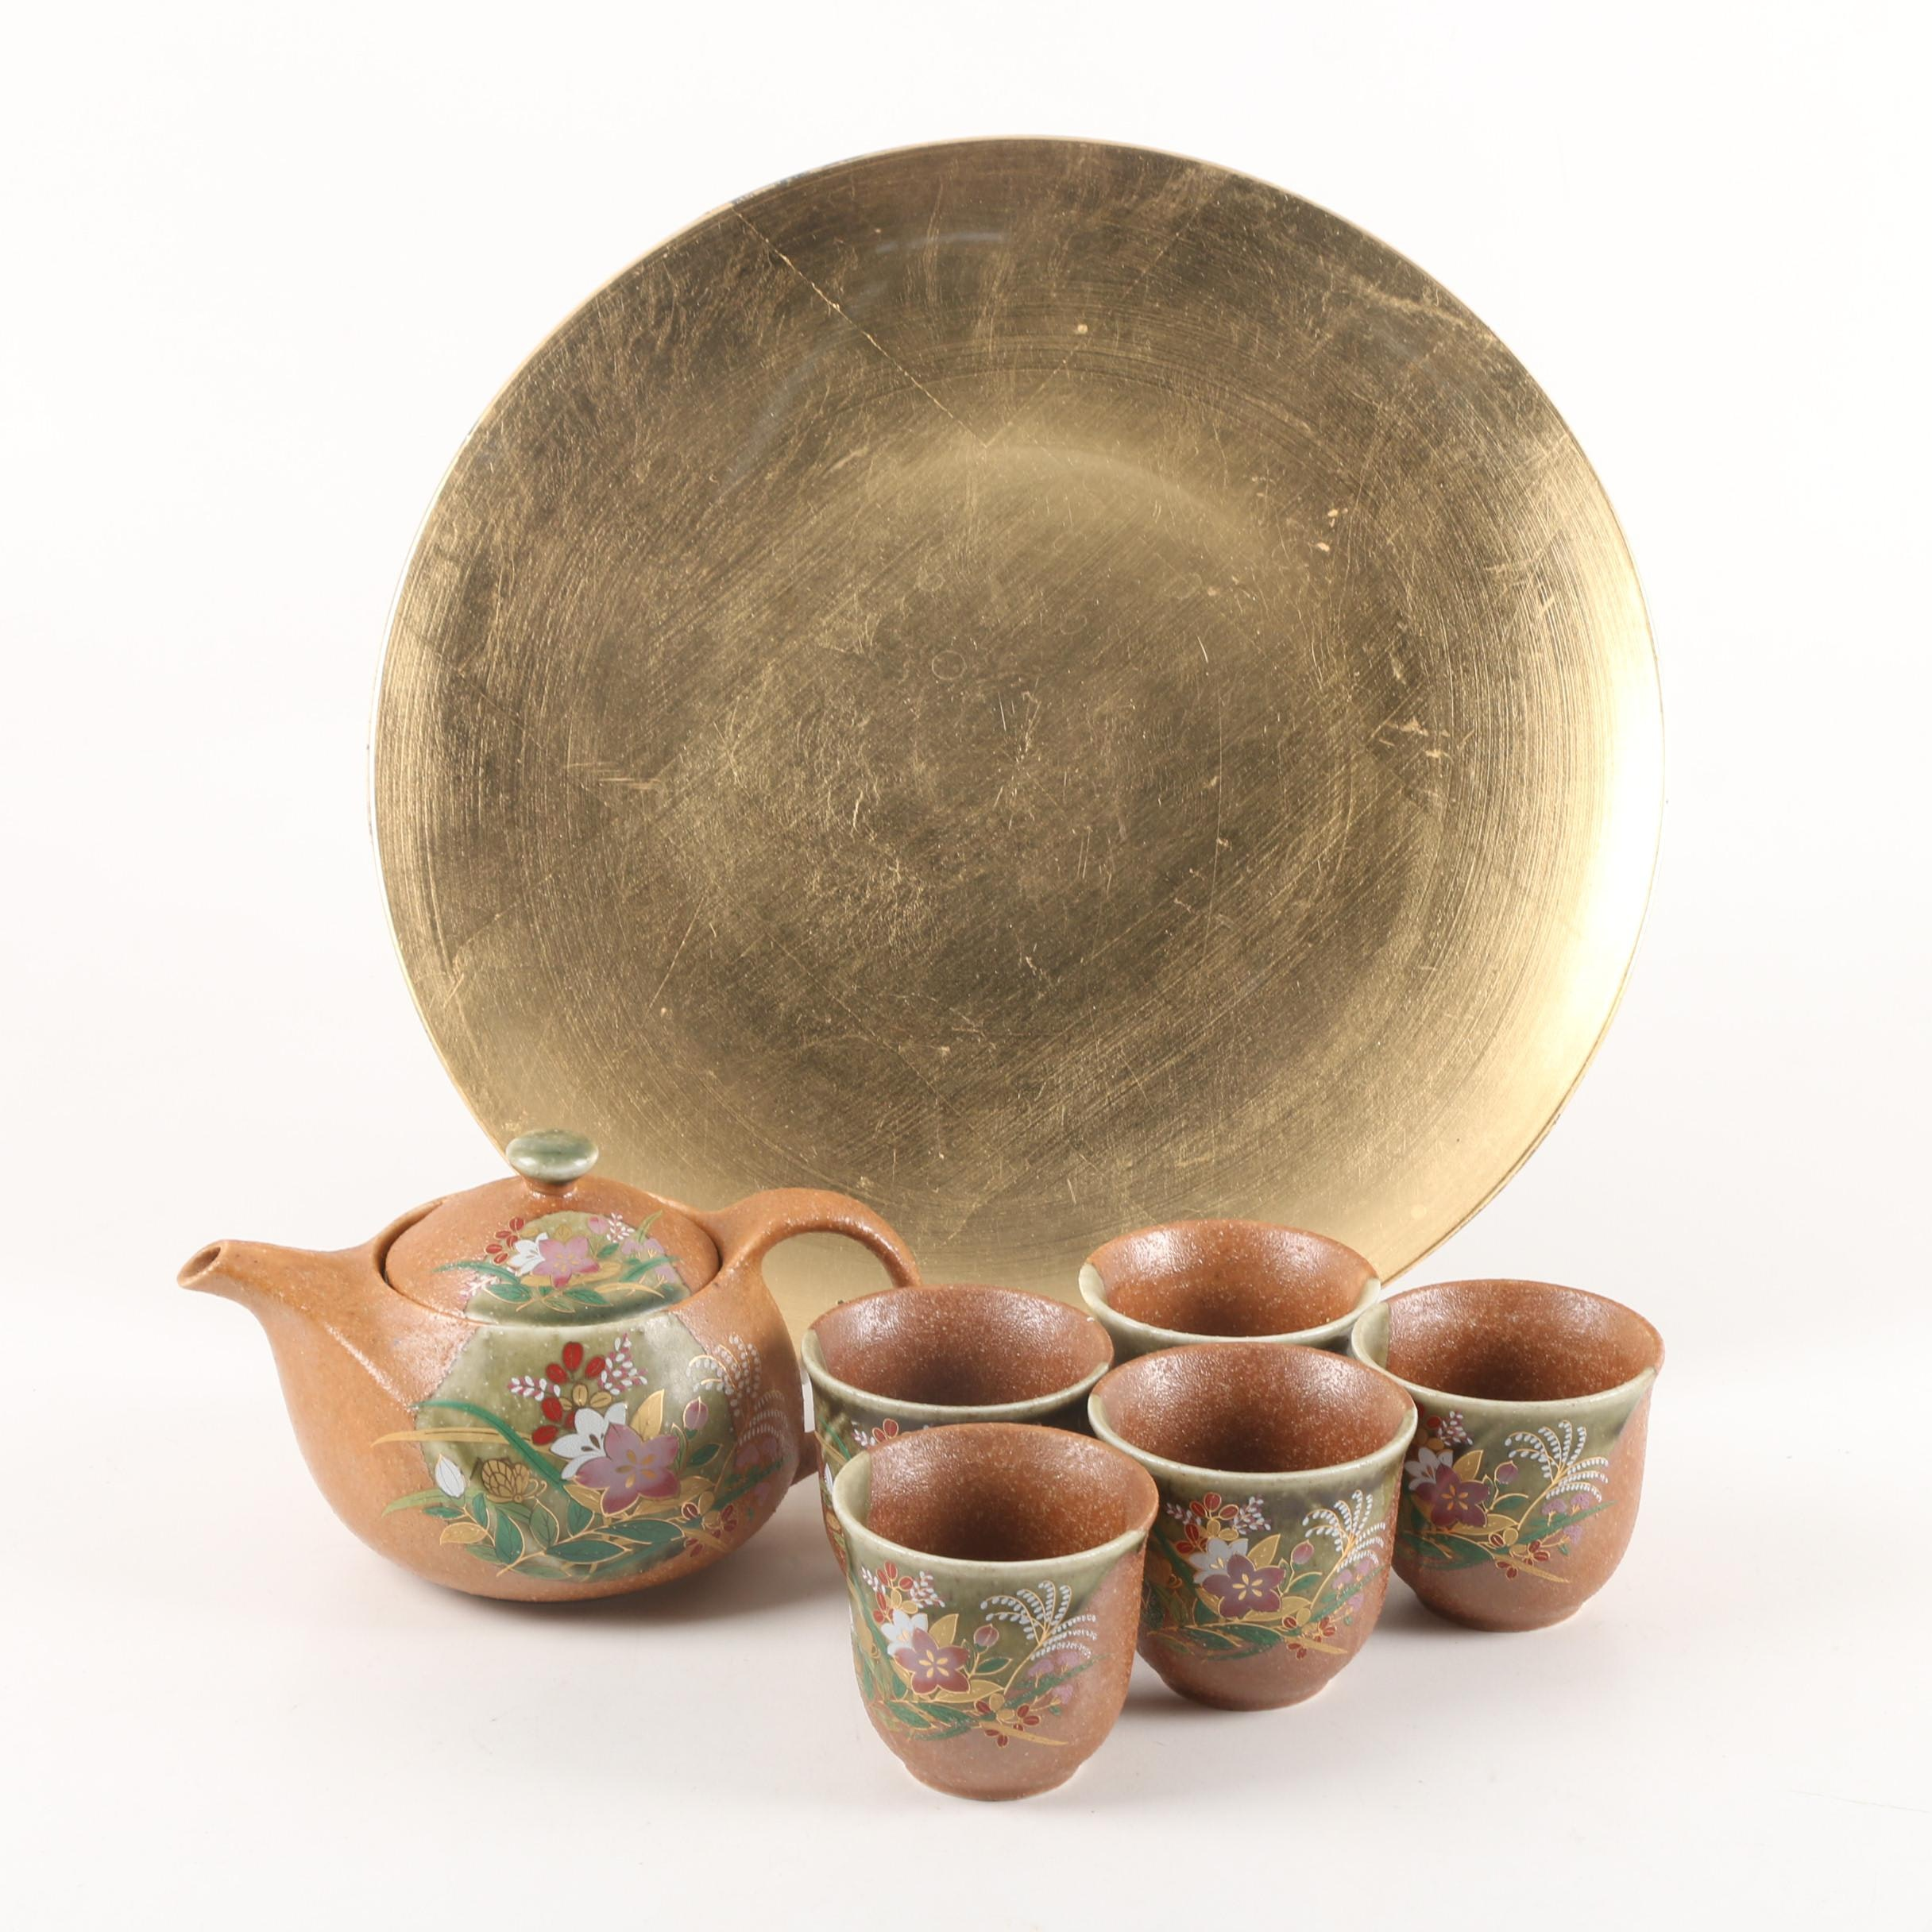 Contemporary Japanese Salt Glazed Tea Set with Gold Tone Charger